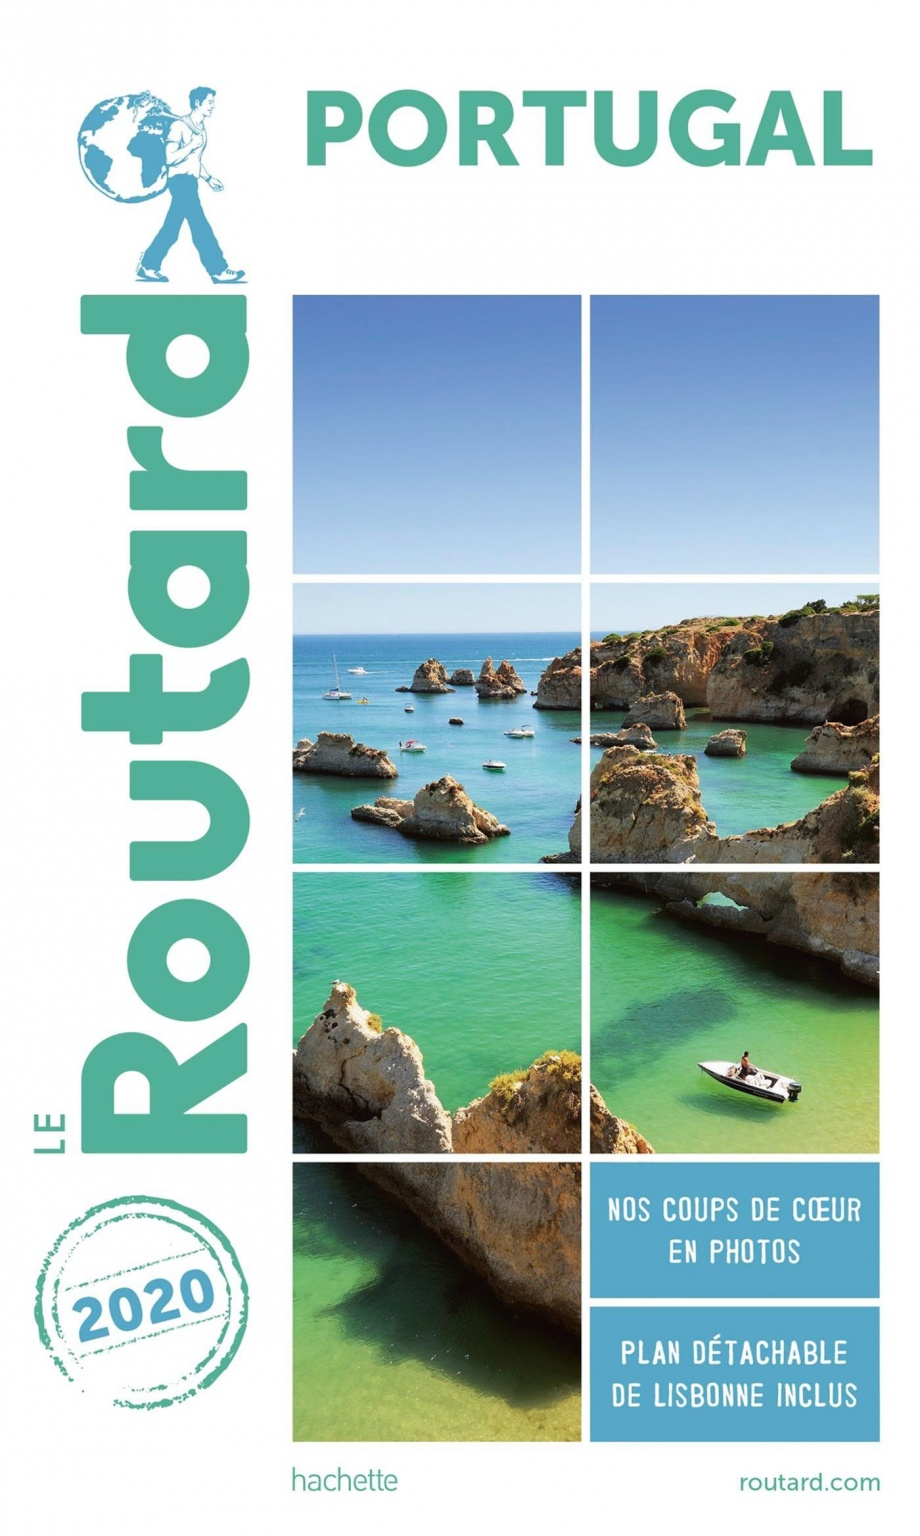 Le Guide Du Routard Lisbonne : guide, routard, lisbonne, Portugal, Philippe, Gloaguen, Voyages, Guides, Europe, Leslibraires.ca